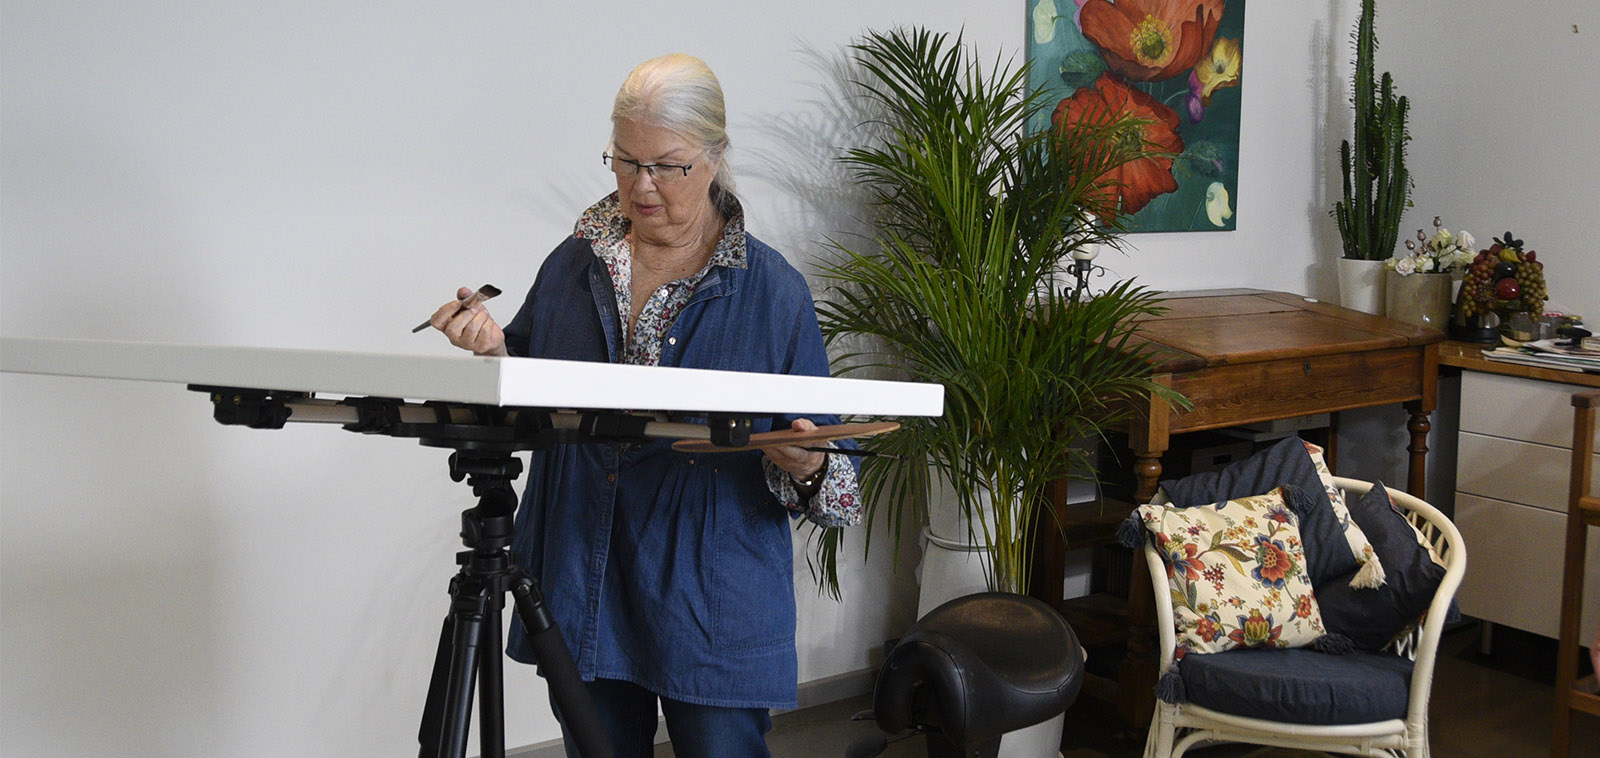 Tilt your canvas horizontally and paint at any height with the artristic STUDIO easel.